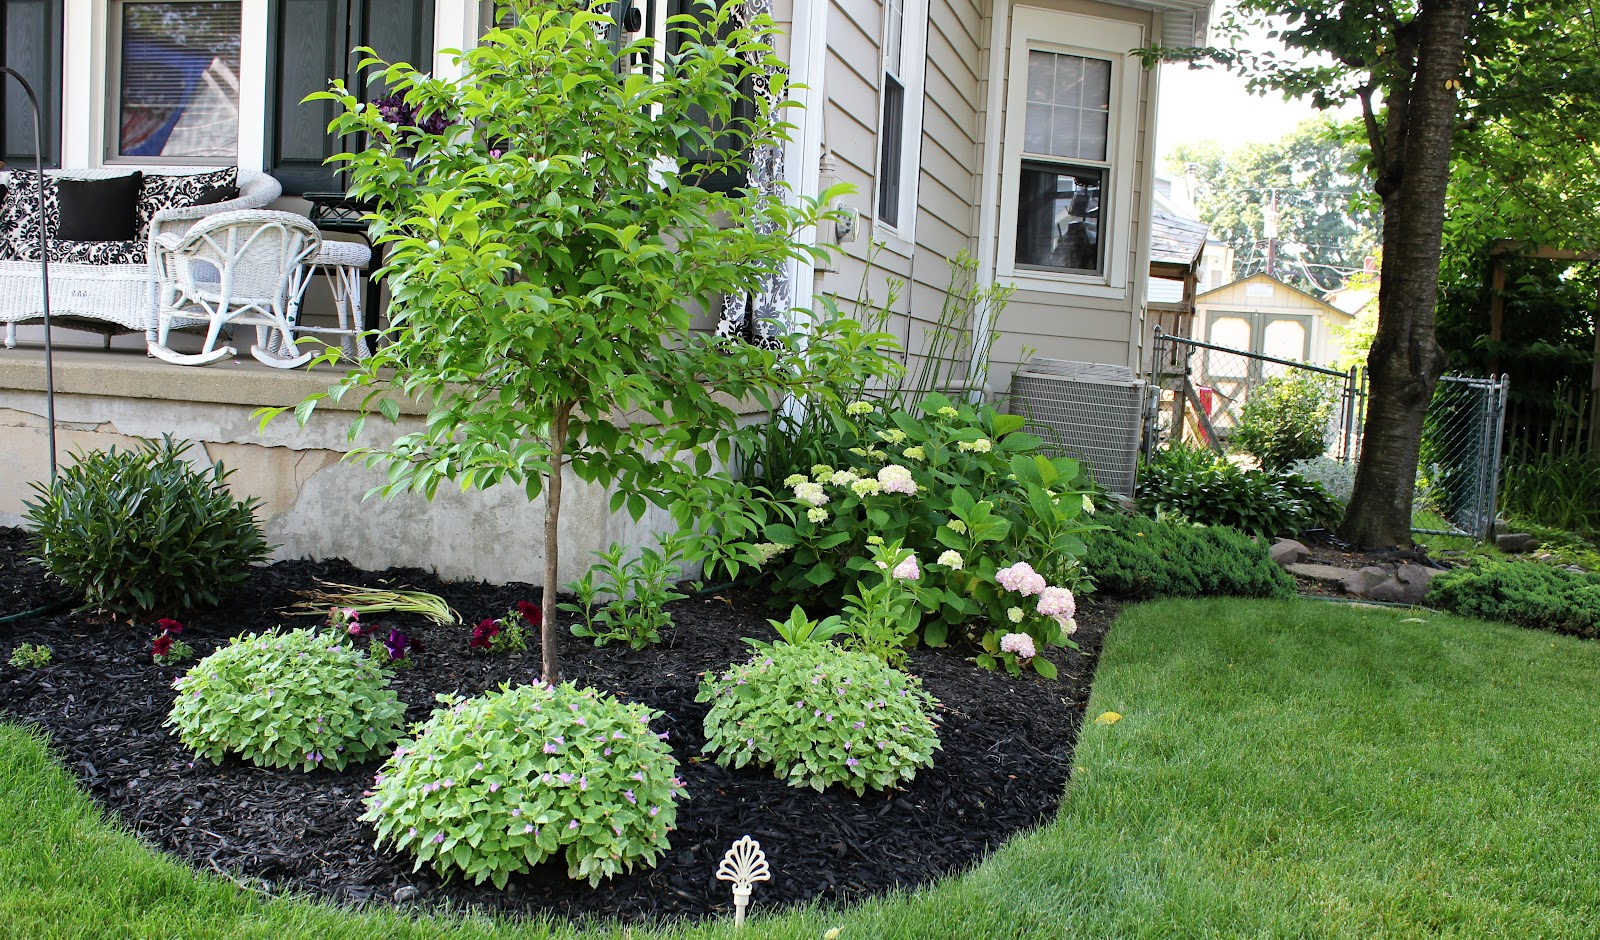 Bleu hydrangea may 2012 for Front garden bed ideas